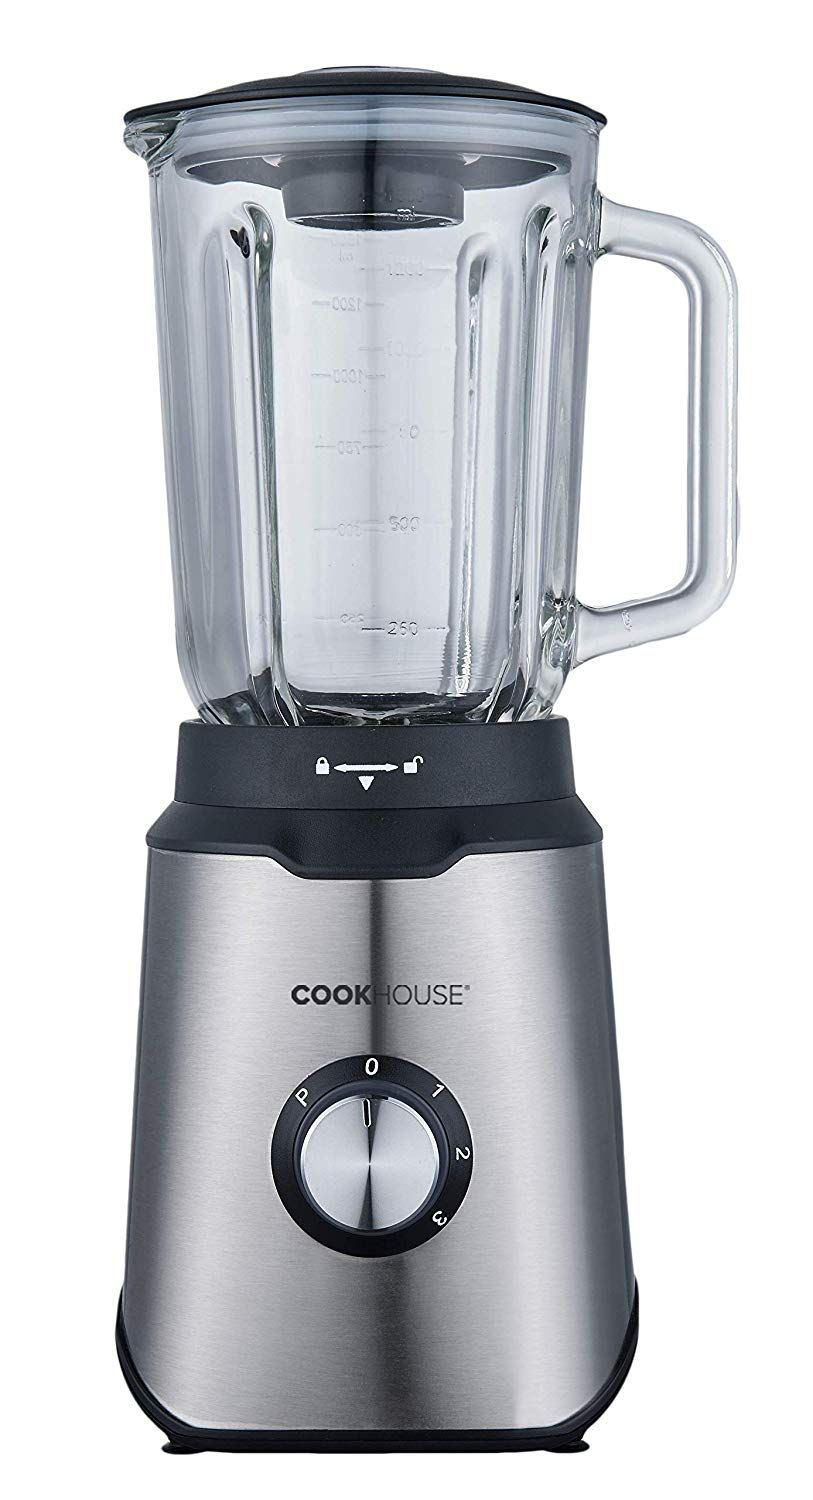 Cookhouse 800w multi blender with bonus spicecoffee